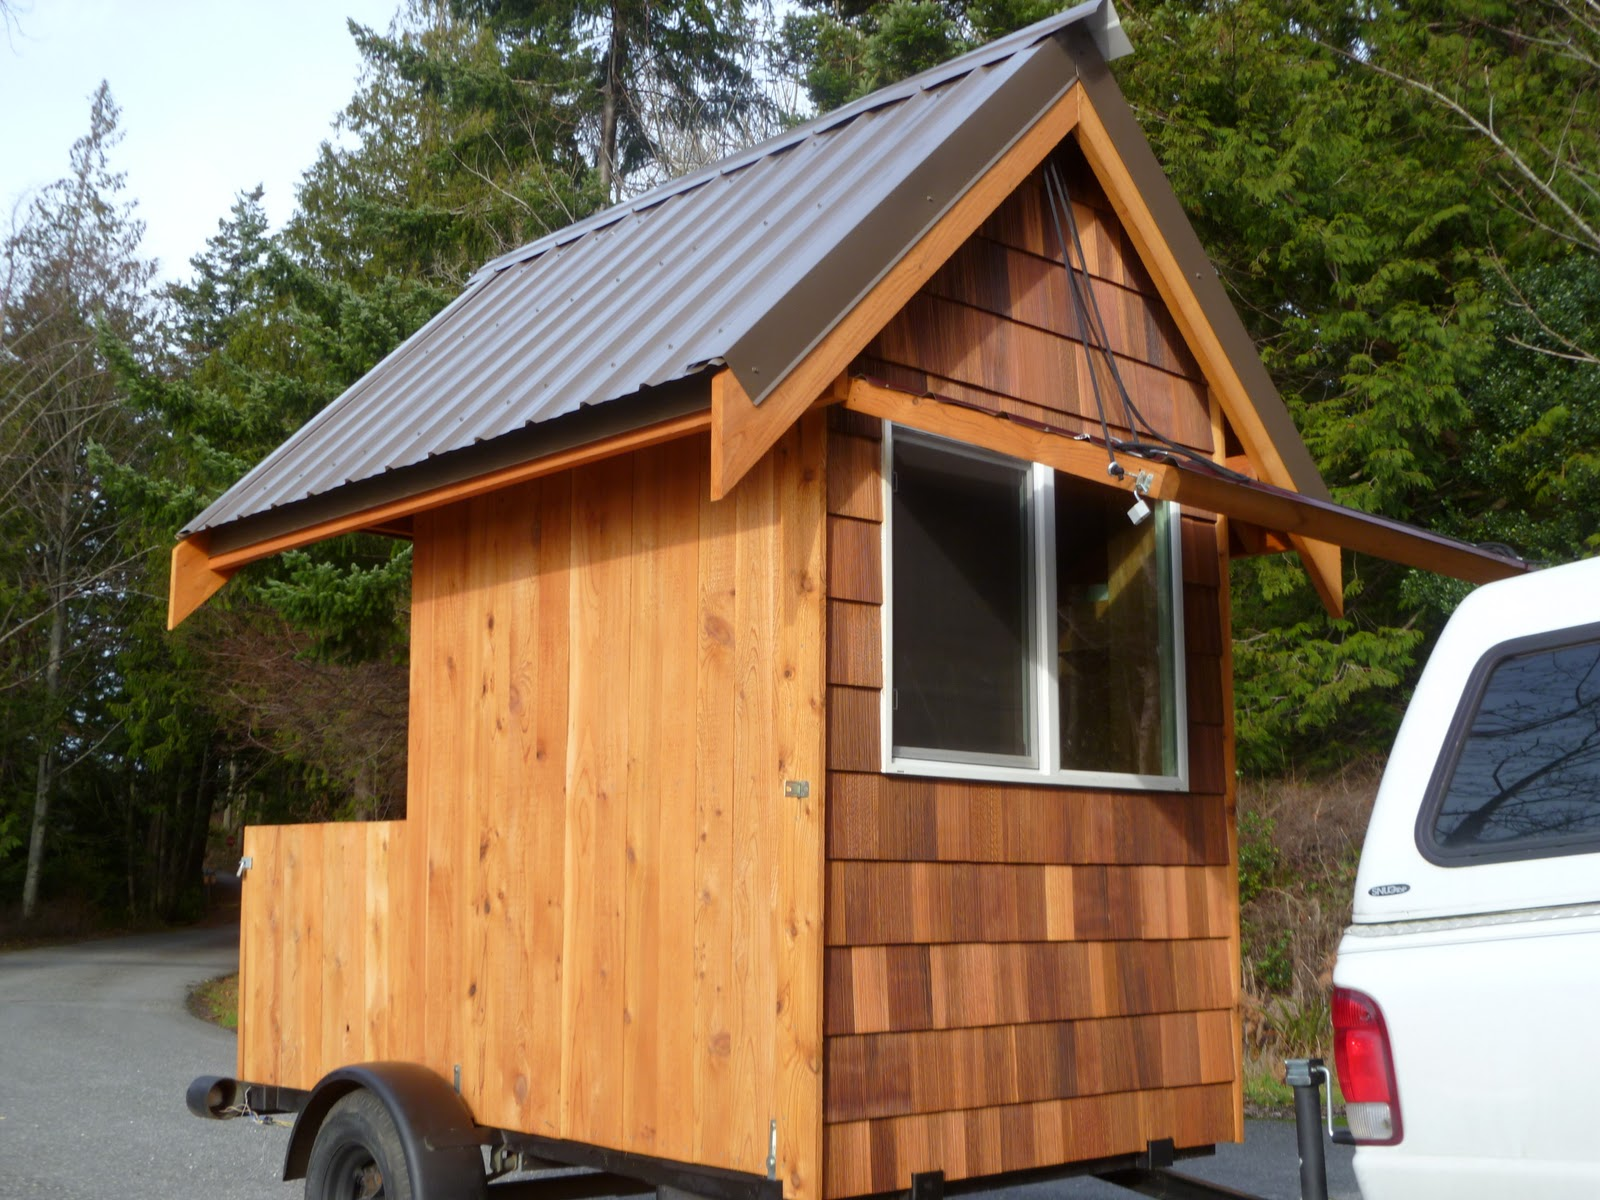 Excellent Relaxshacks Com Eli Curtis Tiny Cabin On Wheels A Micro Getaway Largest Home Design Picture Inspirations Pitcheantrous